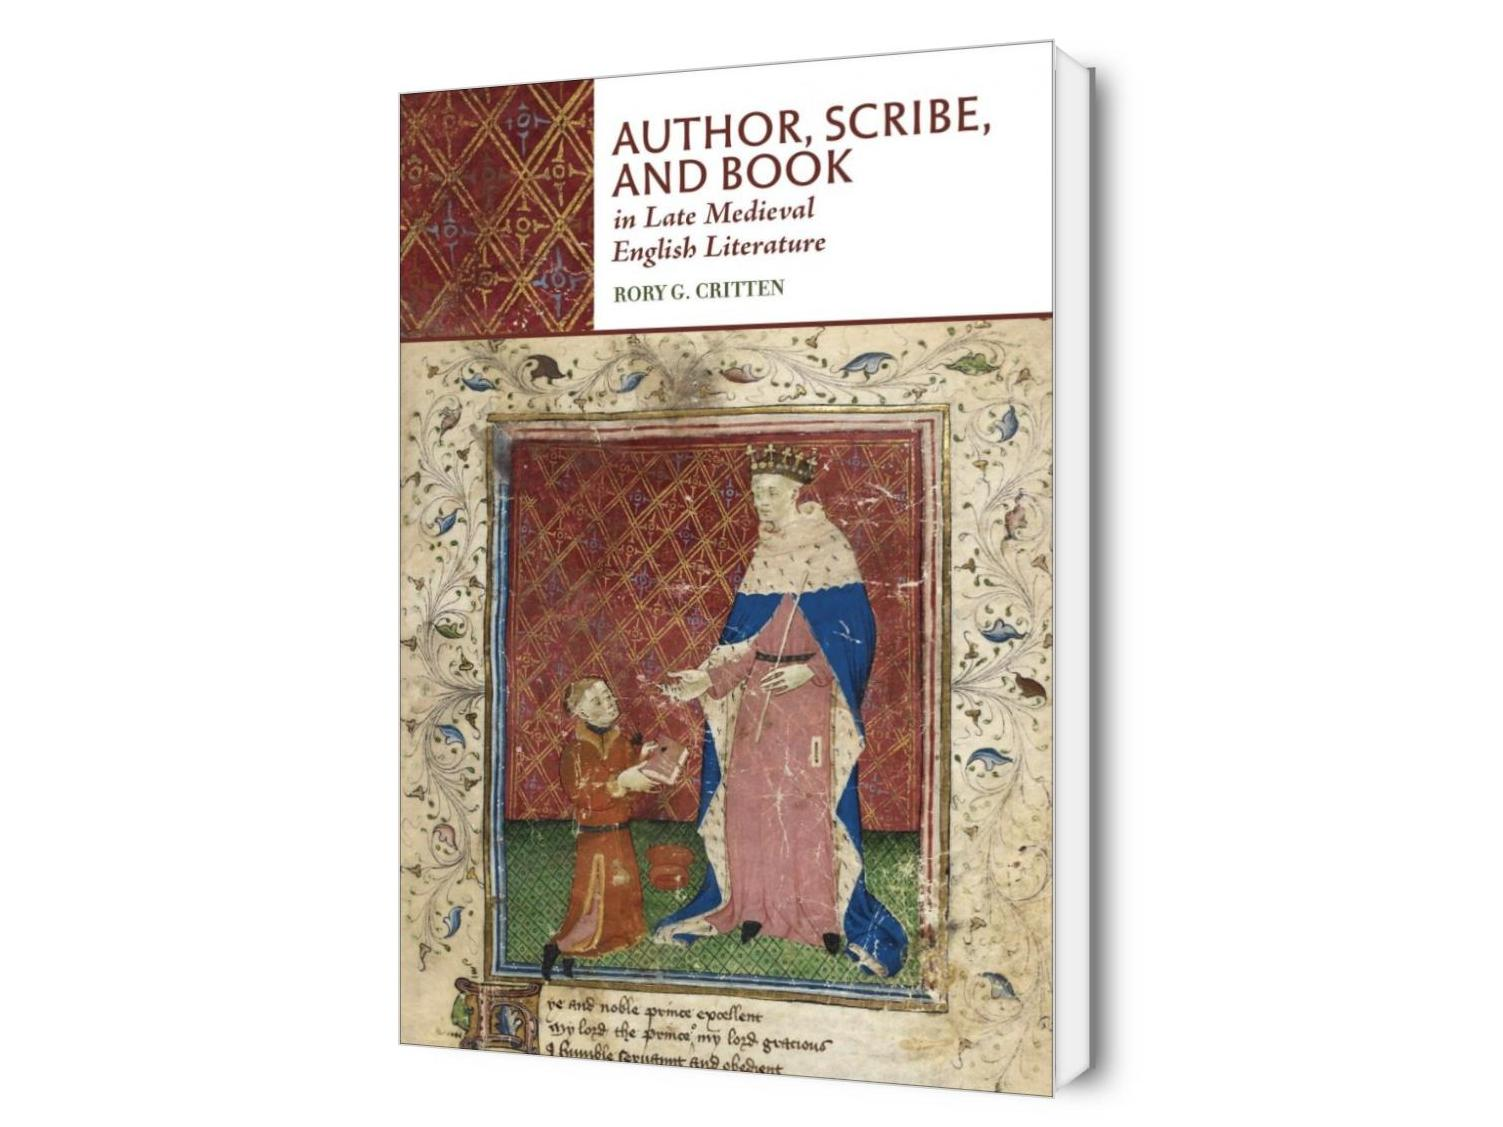 Author, Scribe, and Book in Late Medieval English Literature